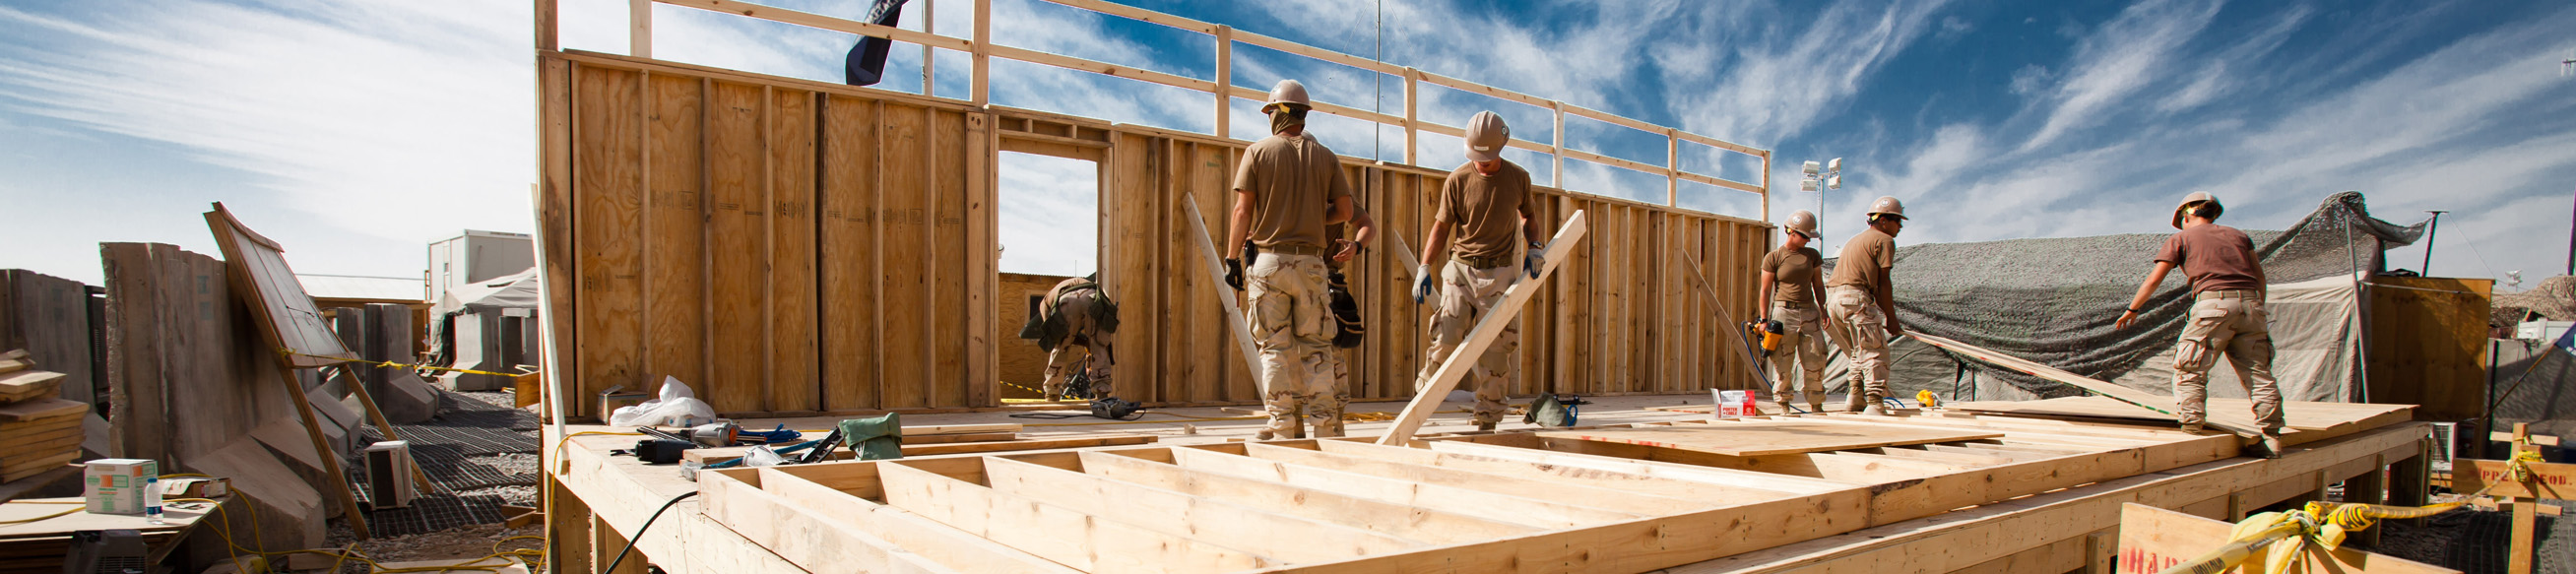 slim_US_Navy_101104-N-6383T-507_Seabees_assigned_to_Naval_Mobile_Construction_Battalion_NMCB_18_build_a_Southwest_Asian_Hut_at_Kandahar_Air_Field